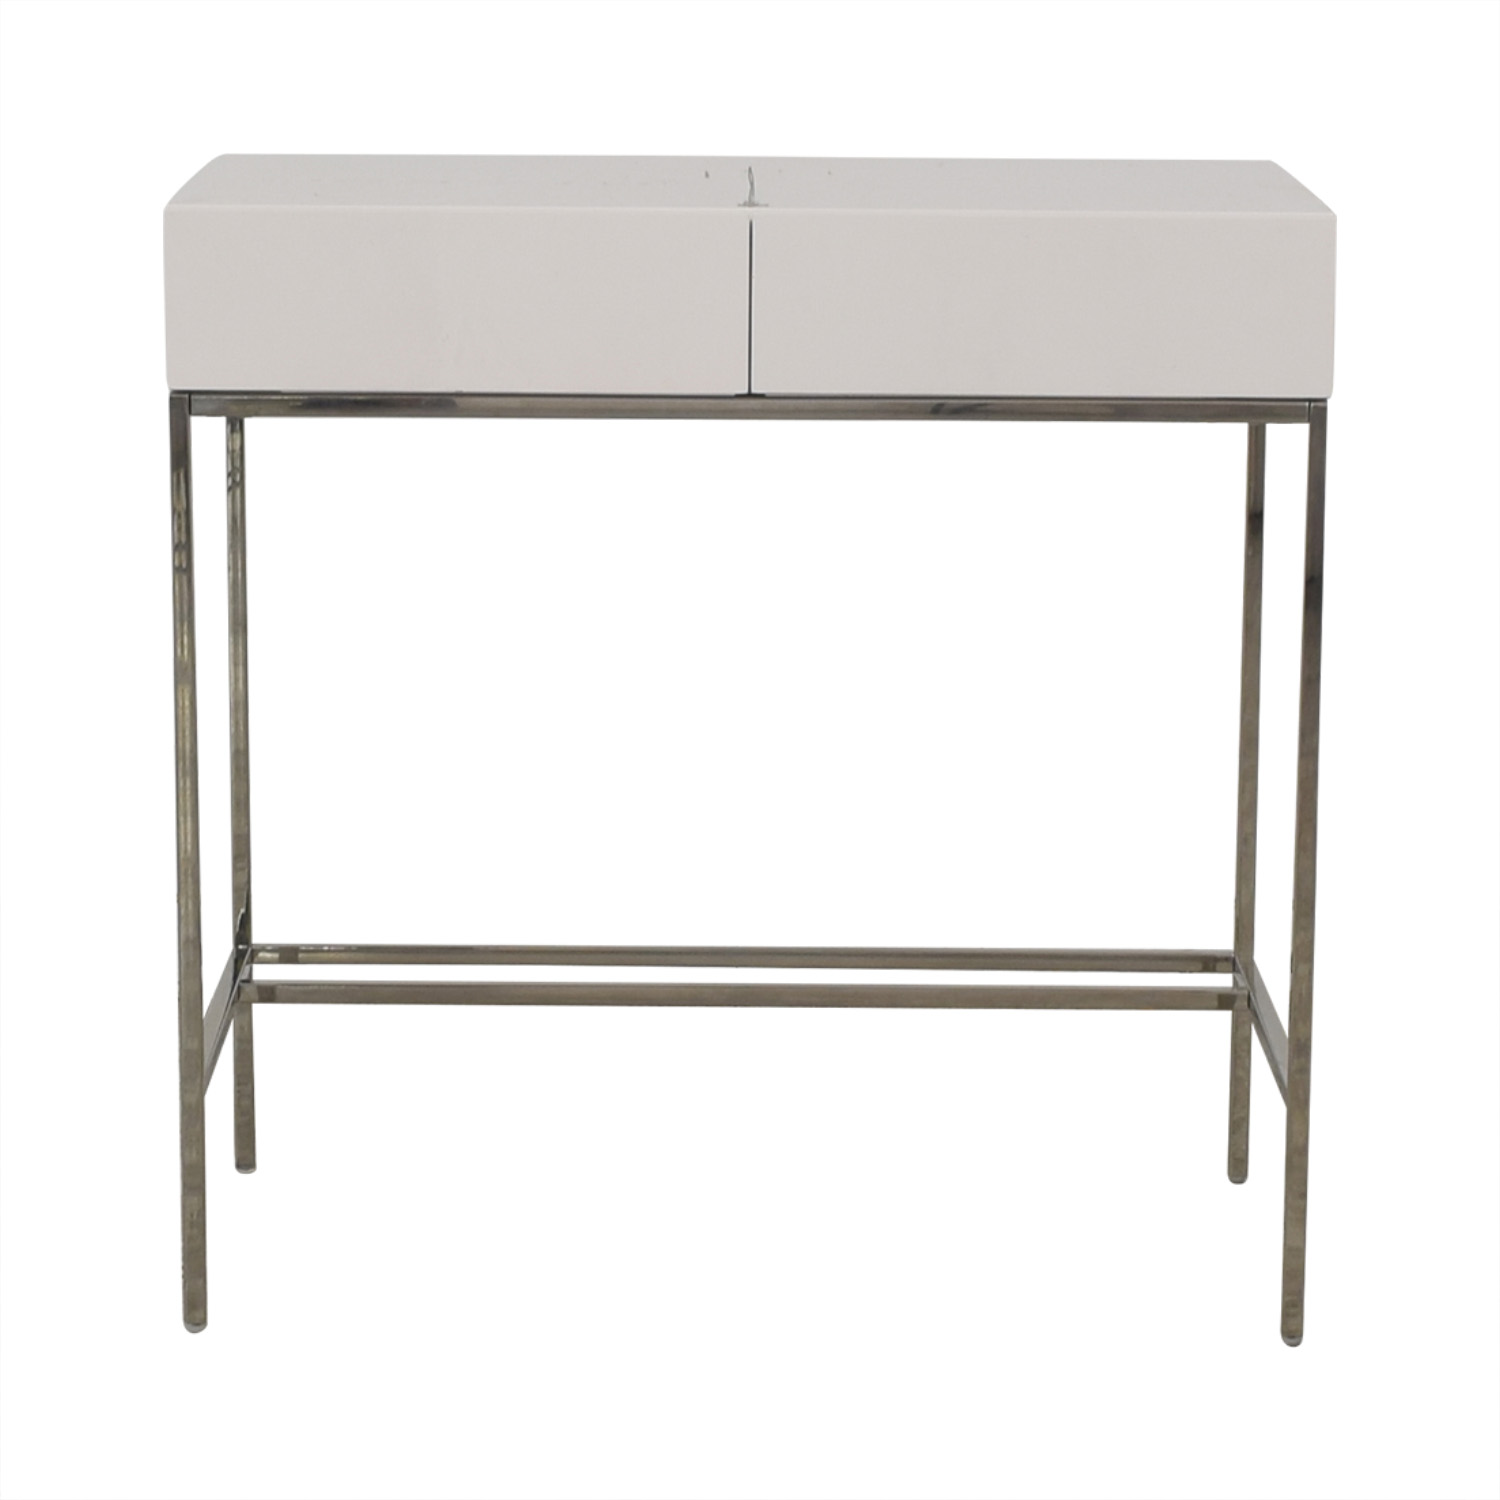 West Elm West Elm White Lacquer Mini Desk for sale